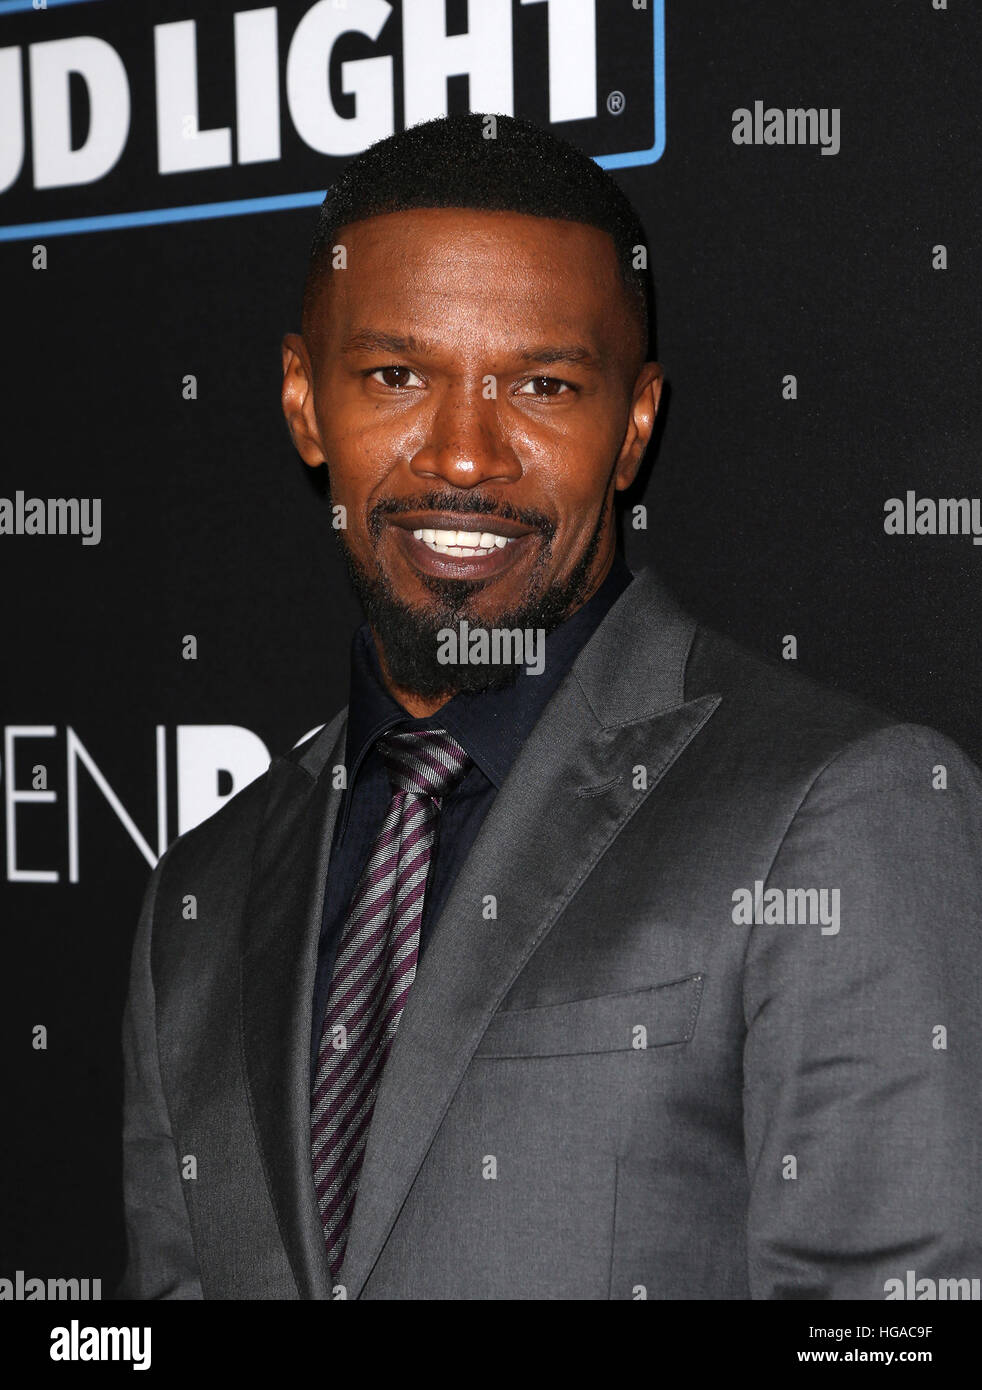 Los Angeles, CA, EE.UU. El 05 ene, 2017. Jamie Foxx, en el estreno de Open Road Films' 'Sleepless', en el Regal Foto de stock